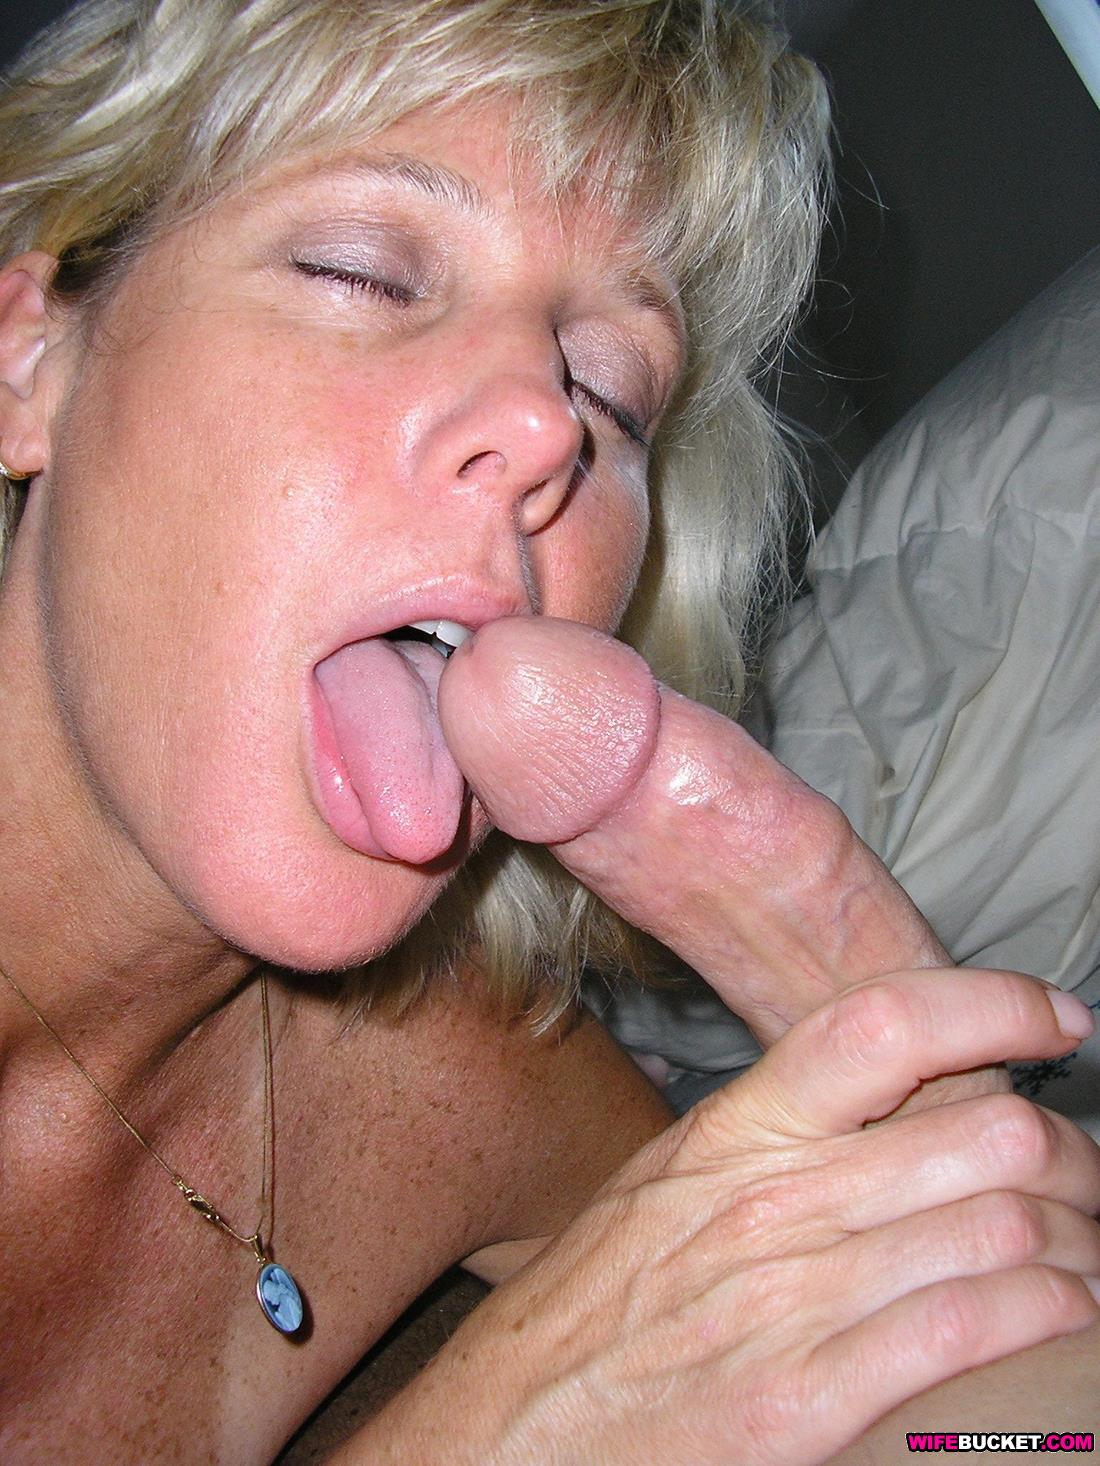 this brilliant idea redhead milf doing blowjob and get bang in big butt that interfere, too